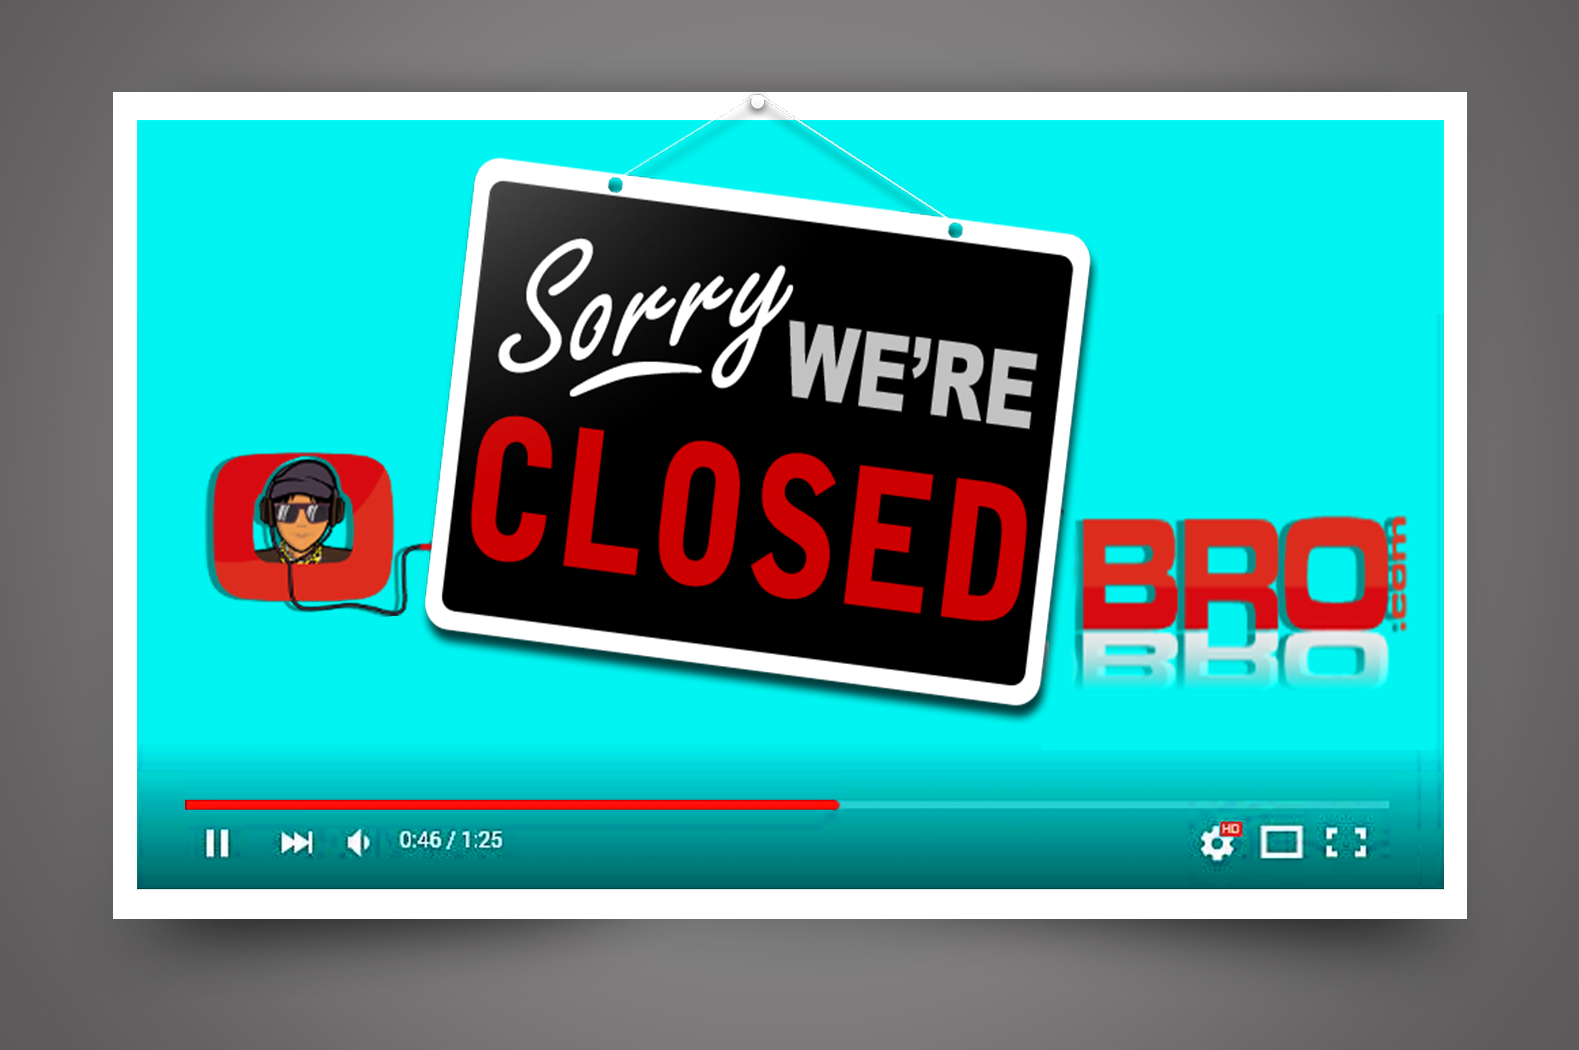 SaveClipBro - Sorry We're Closed Bro - SaveClipBro Shuts down